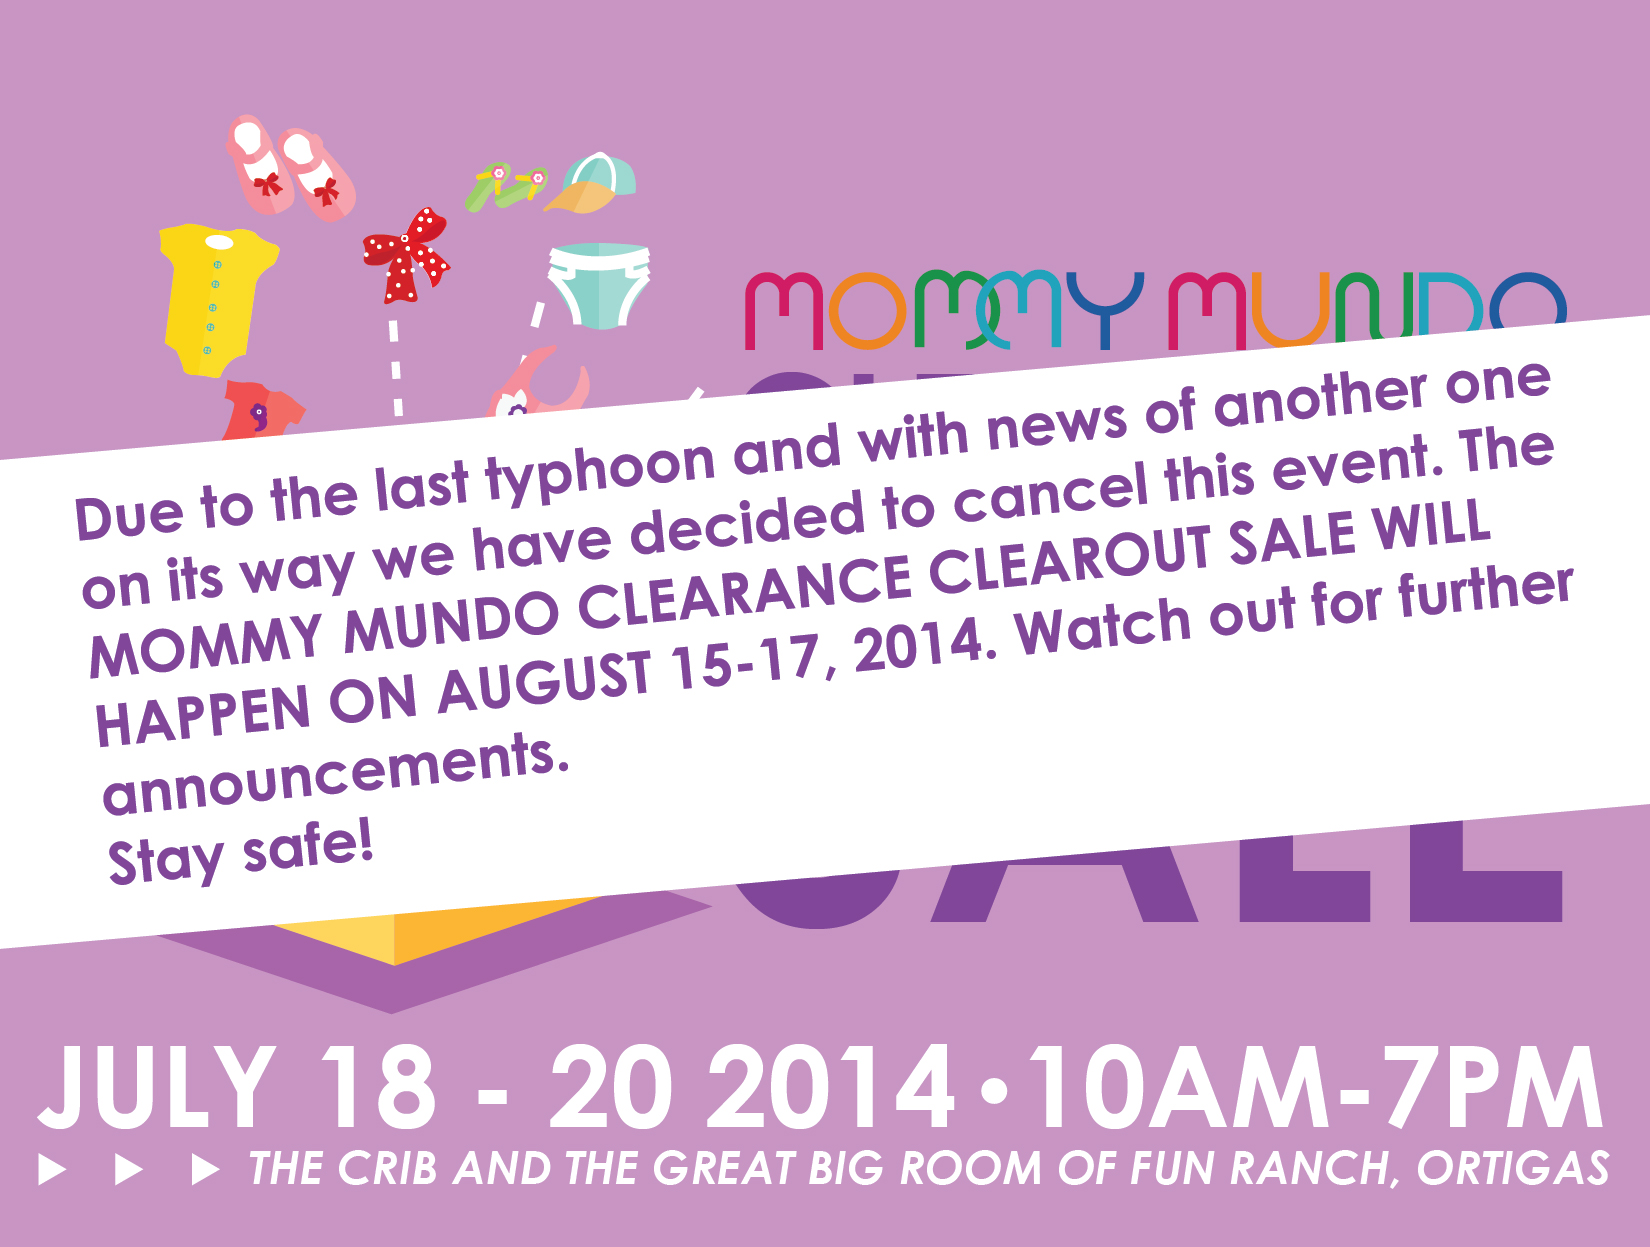 MOMMY MUNDO CLEARANCE CLEAROUT SALE CANCELLED, MOVED TO AUGUST